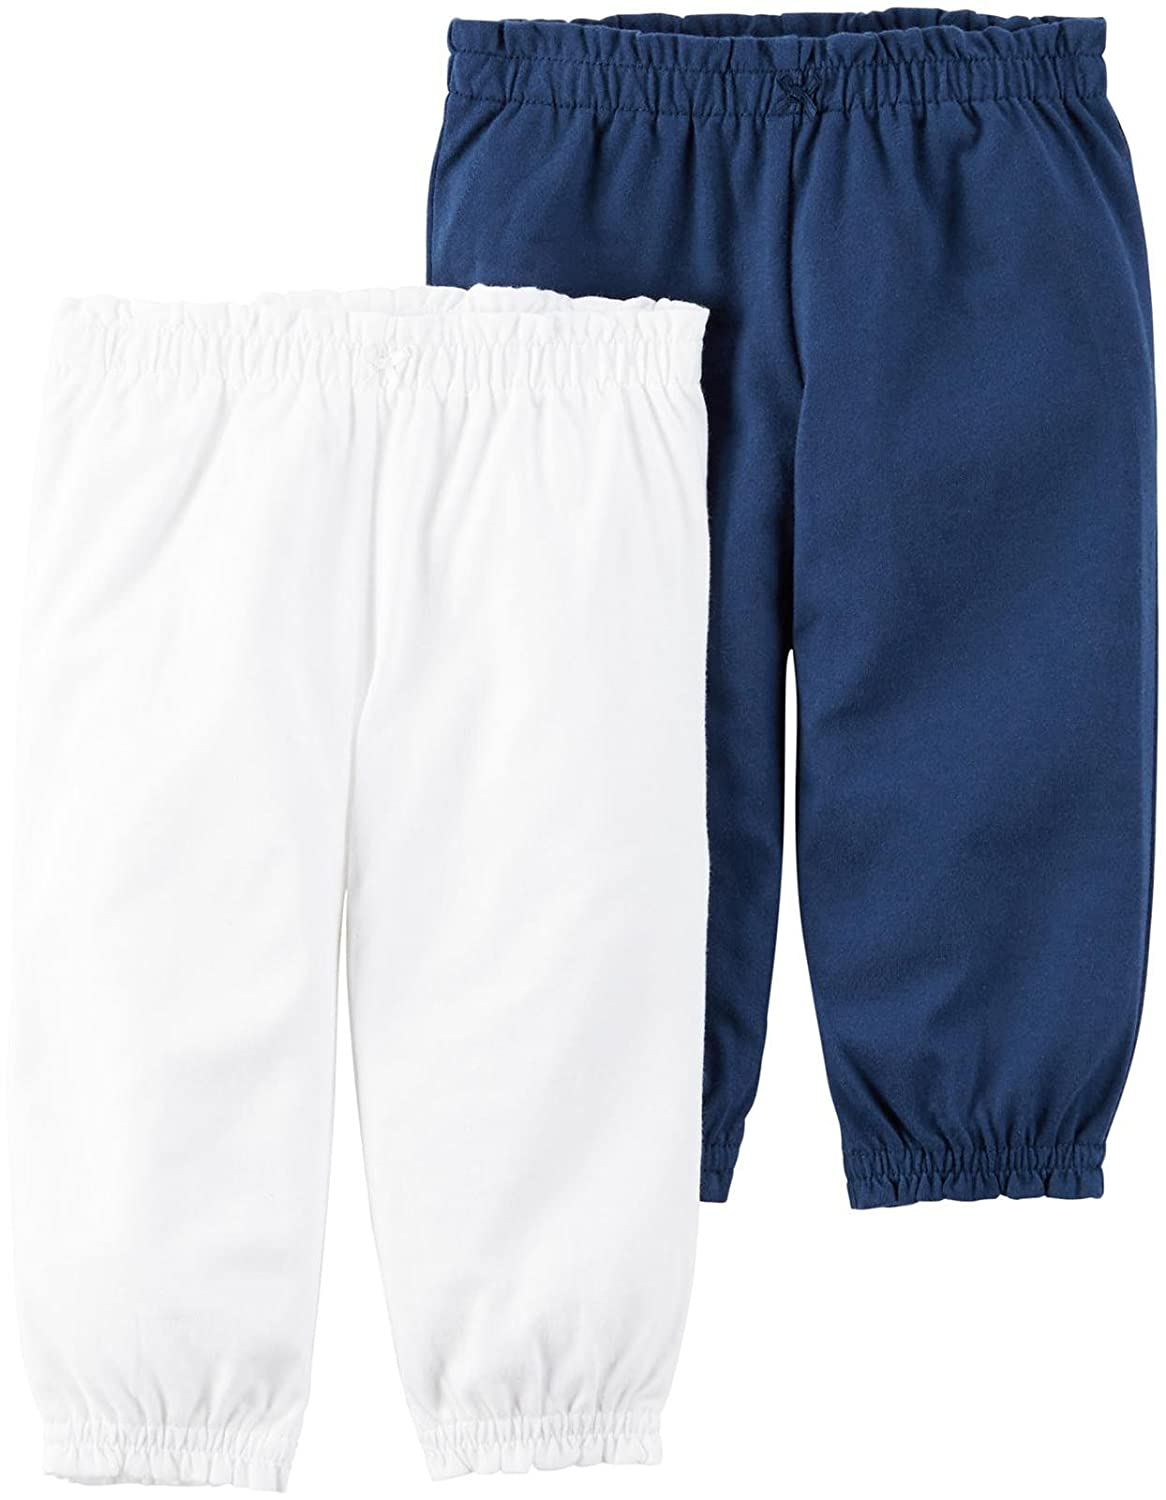 Carter's Baby Girls' 2 Pack Pants